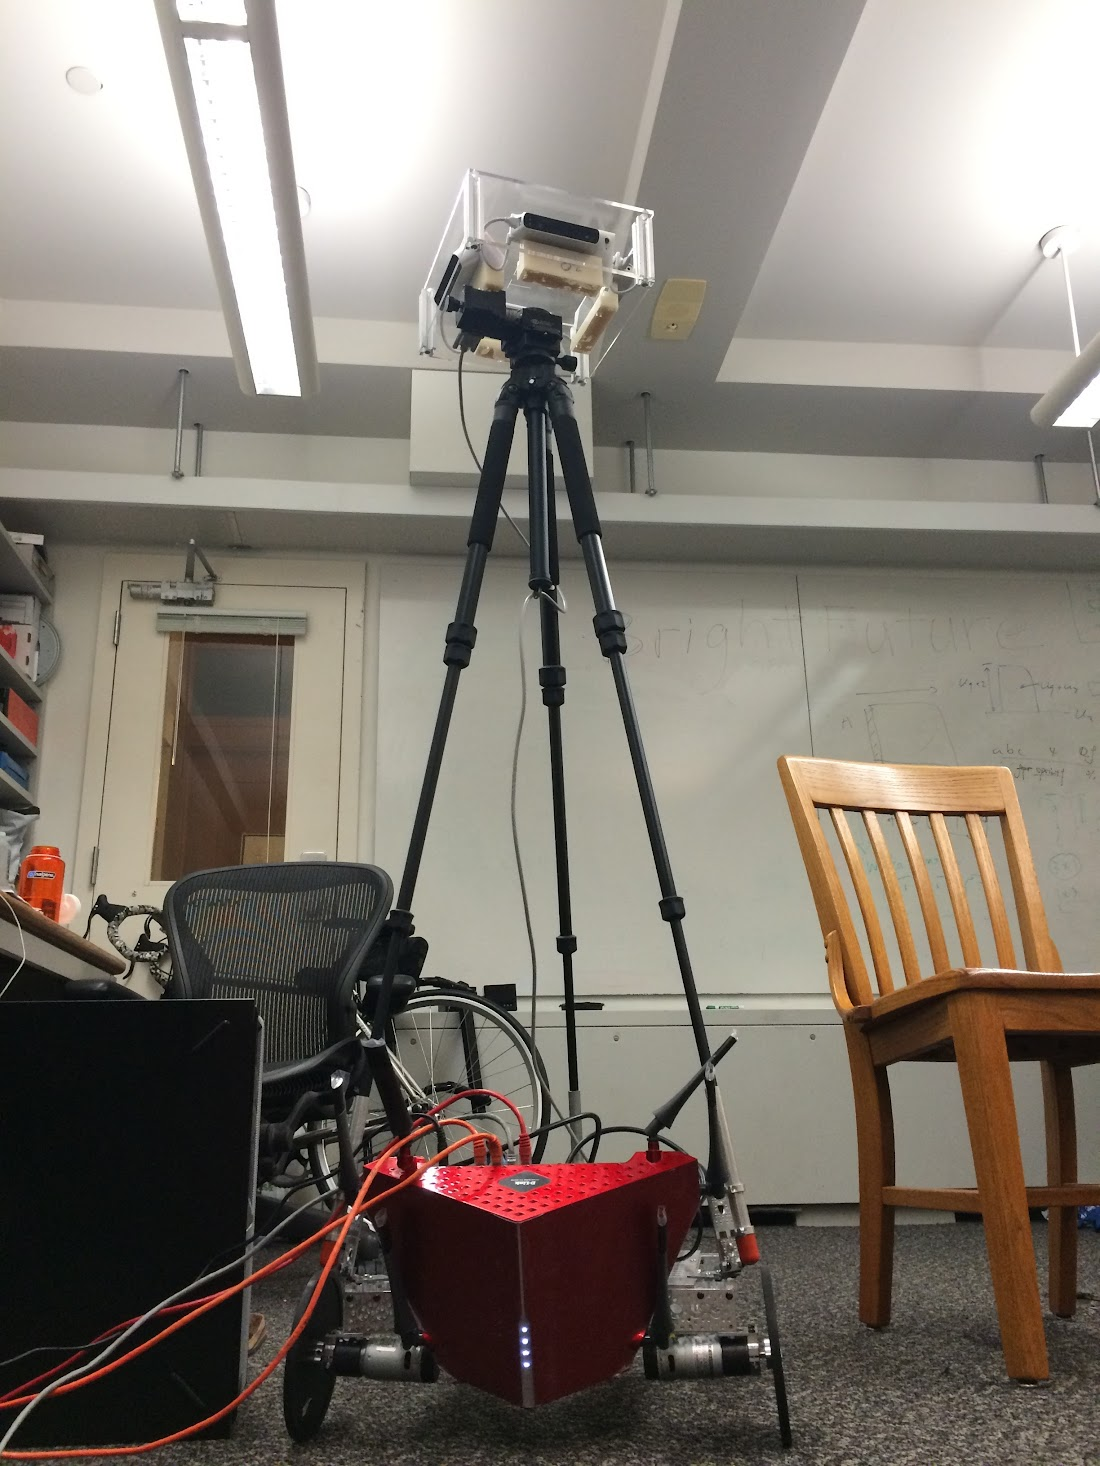 Mobot: An autonomous room-mapping robot